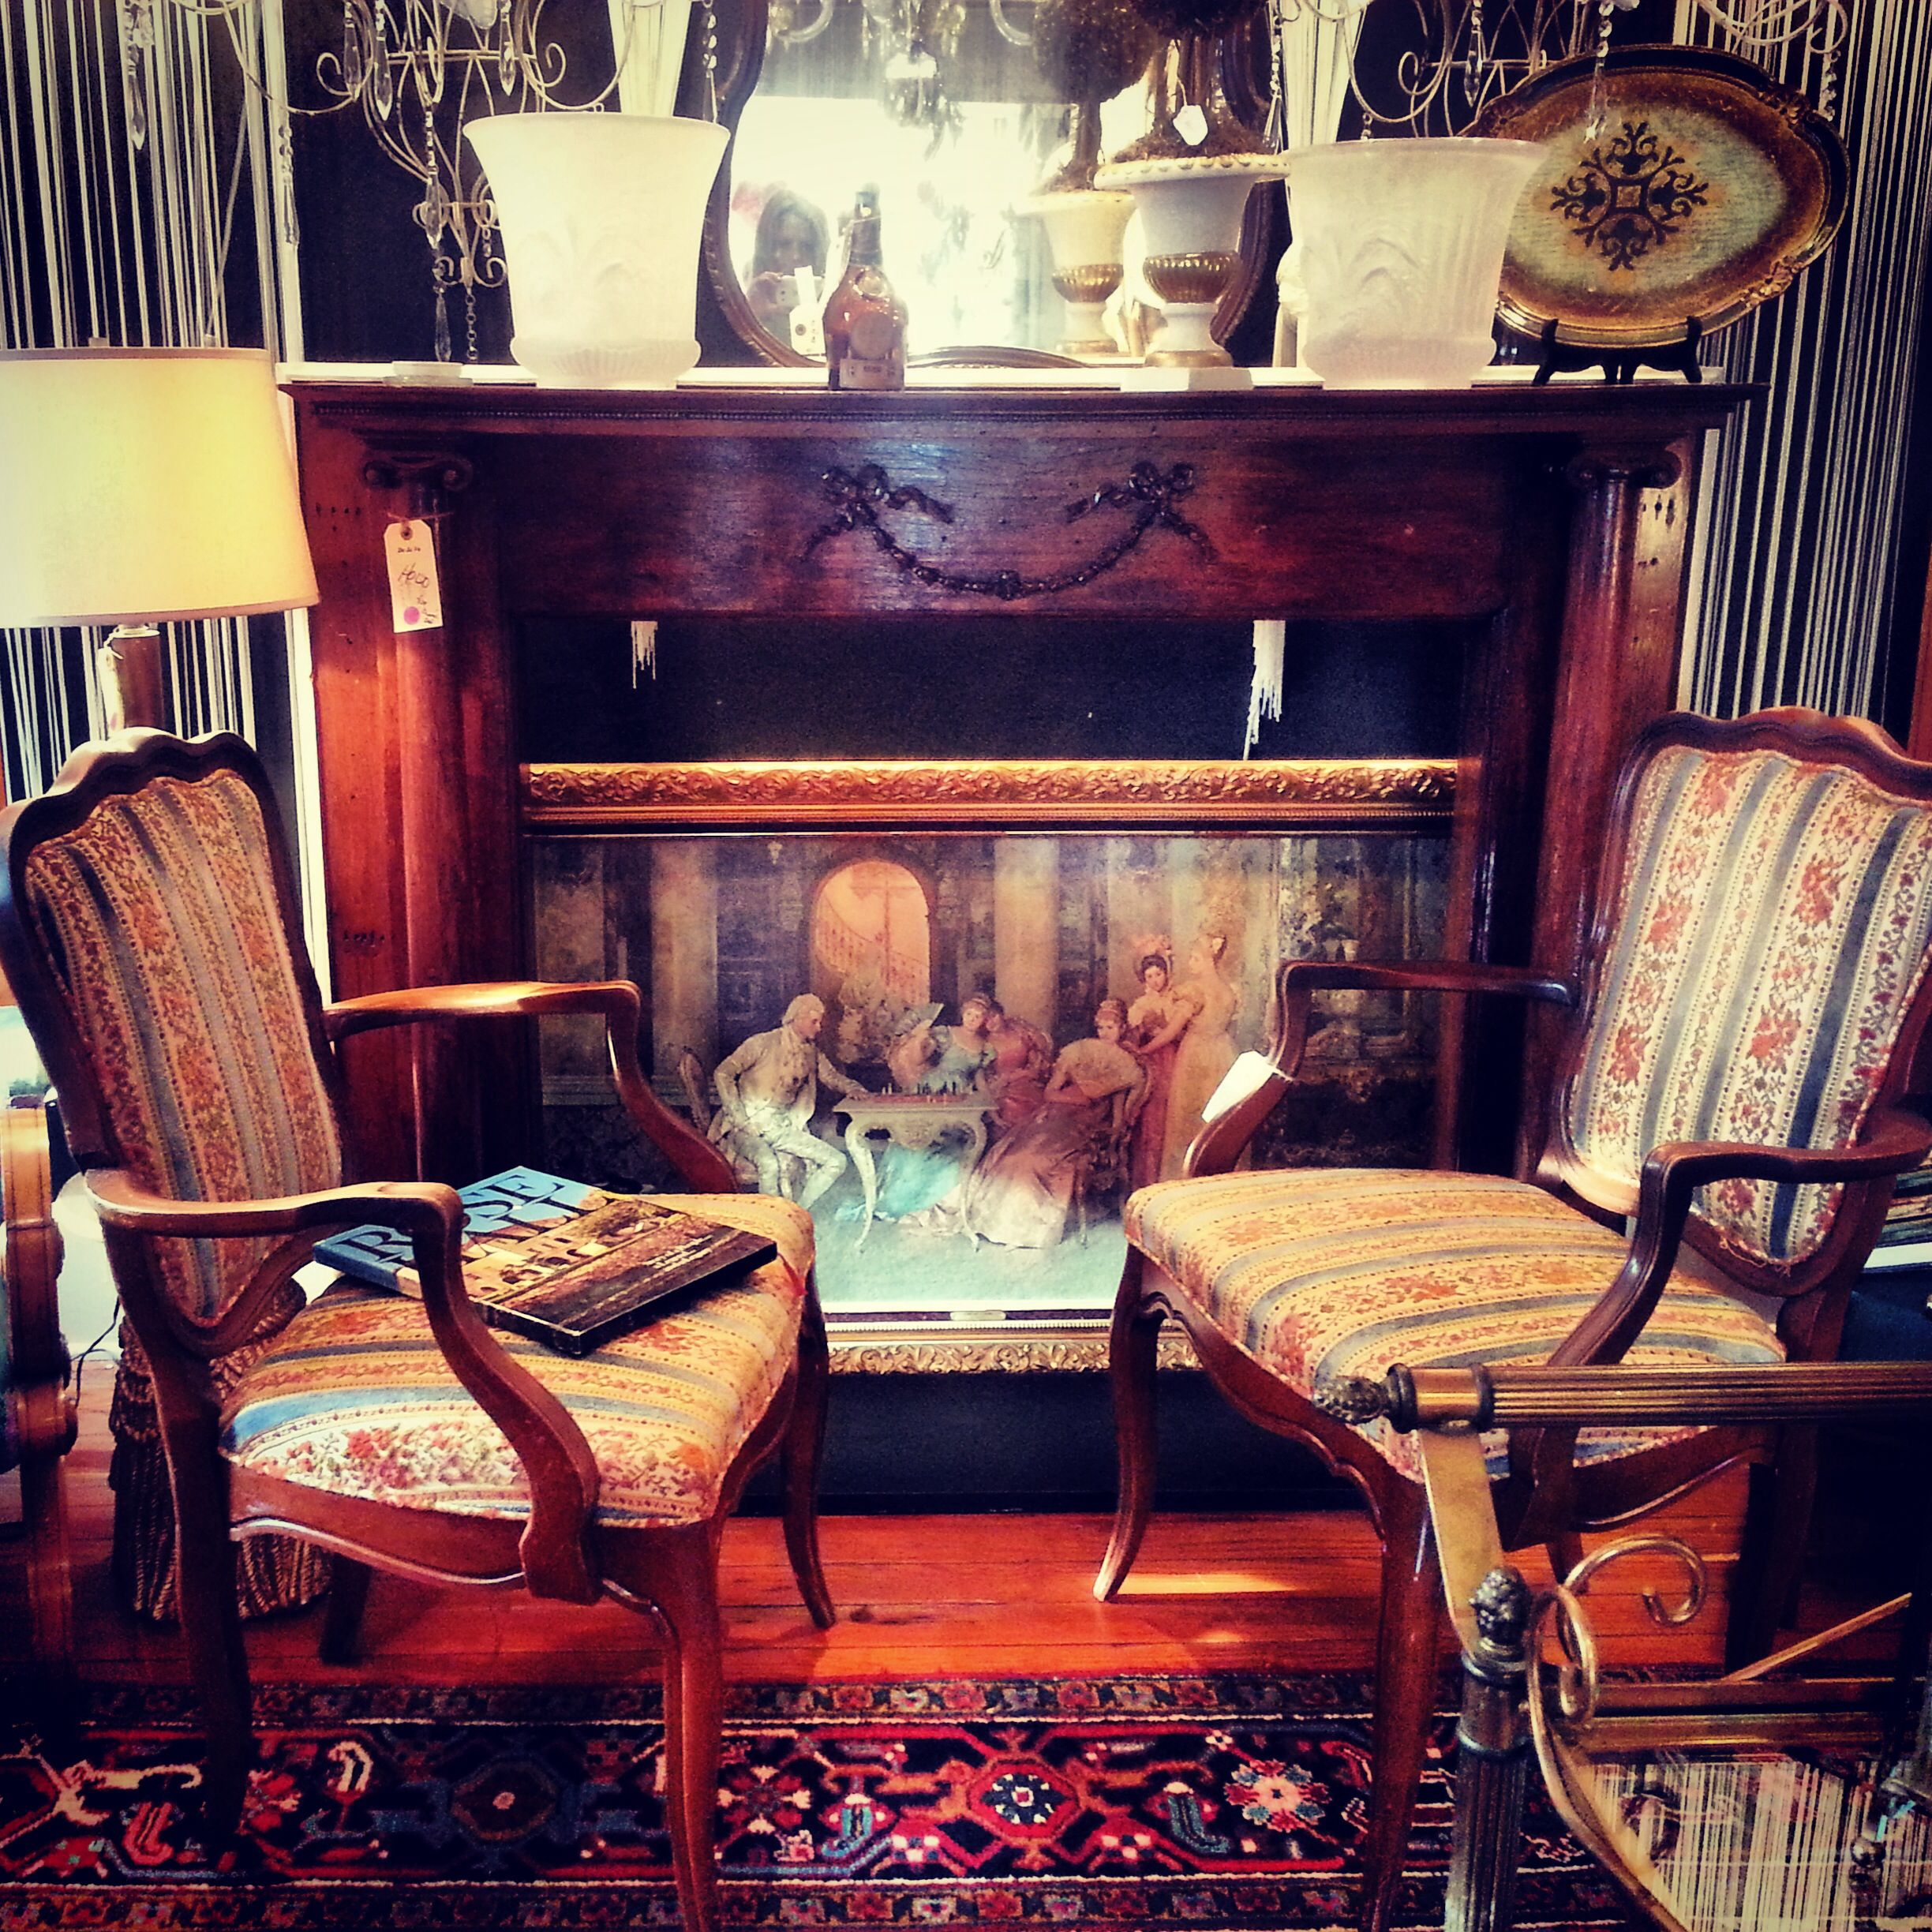 #chairs #painting #rugs #dejavufurniture #trolleysquare #de #delaware #interiordesign #mantle #wow #beautiful #shopping